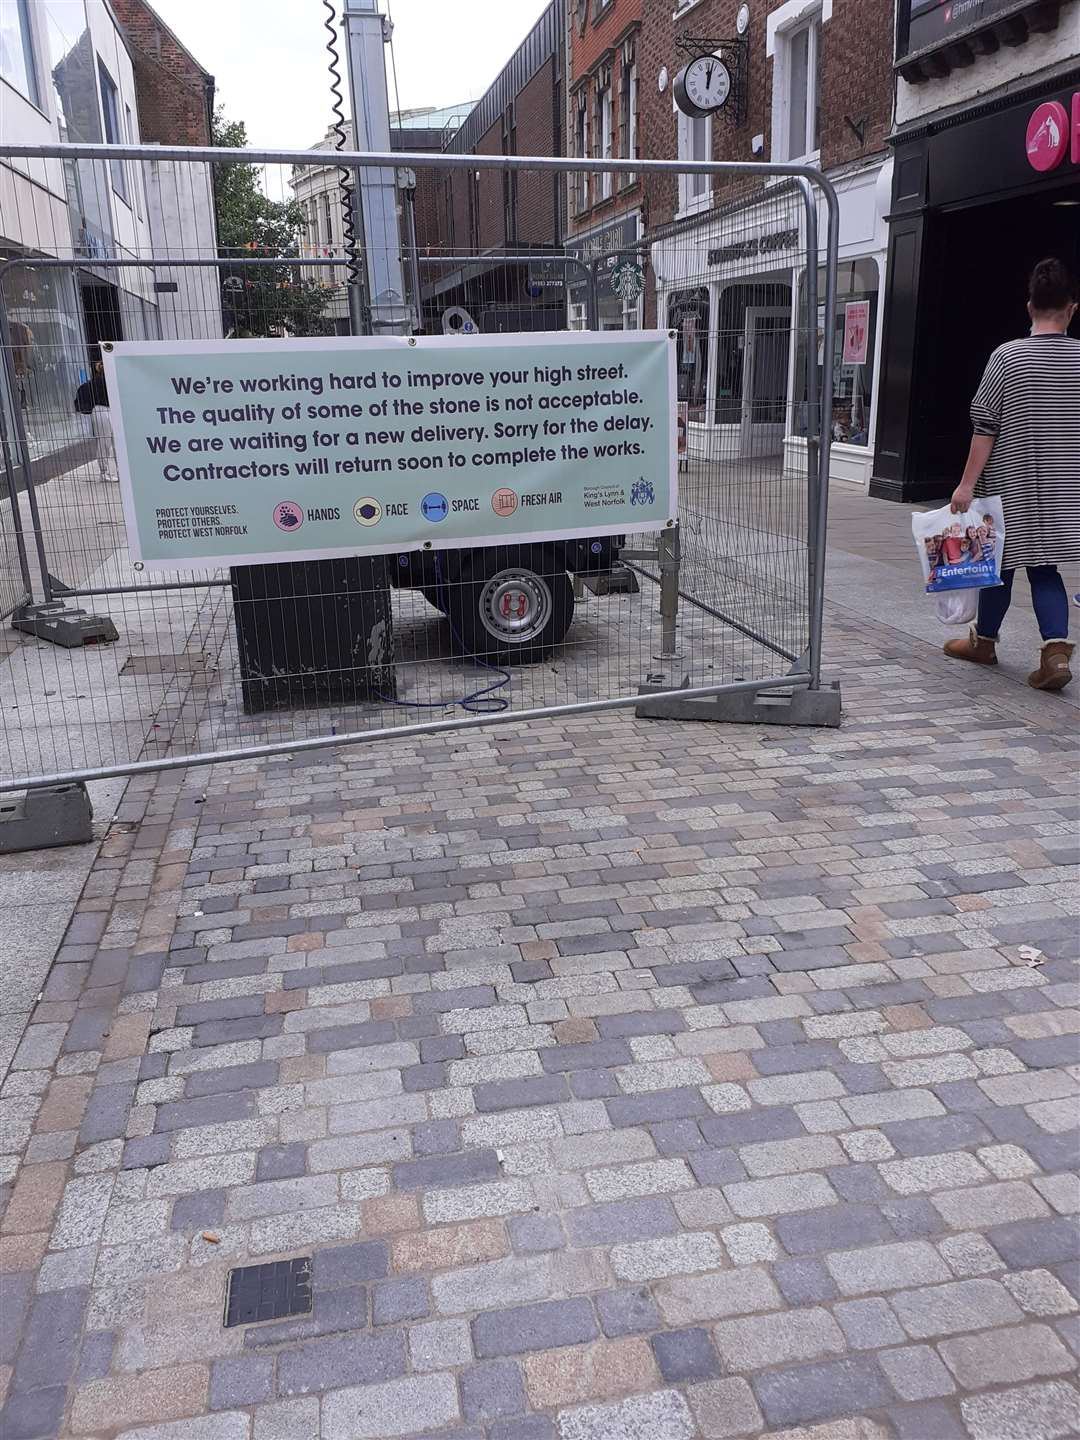 The High Street in Lynn, where there have been delays to paving work caused by the incorrect quality of stone being delivered